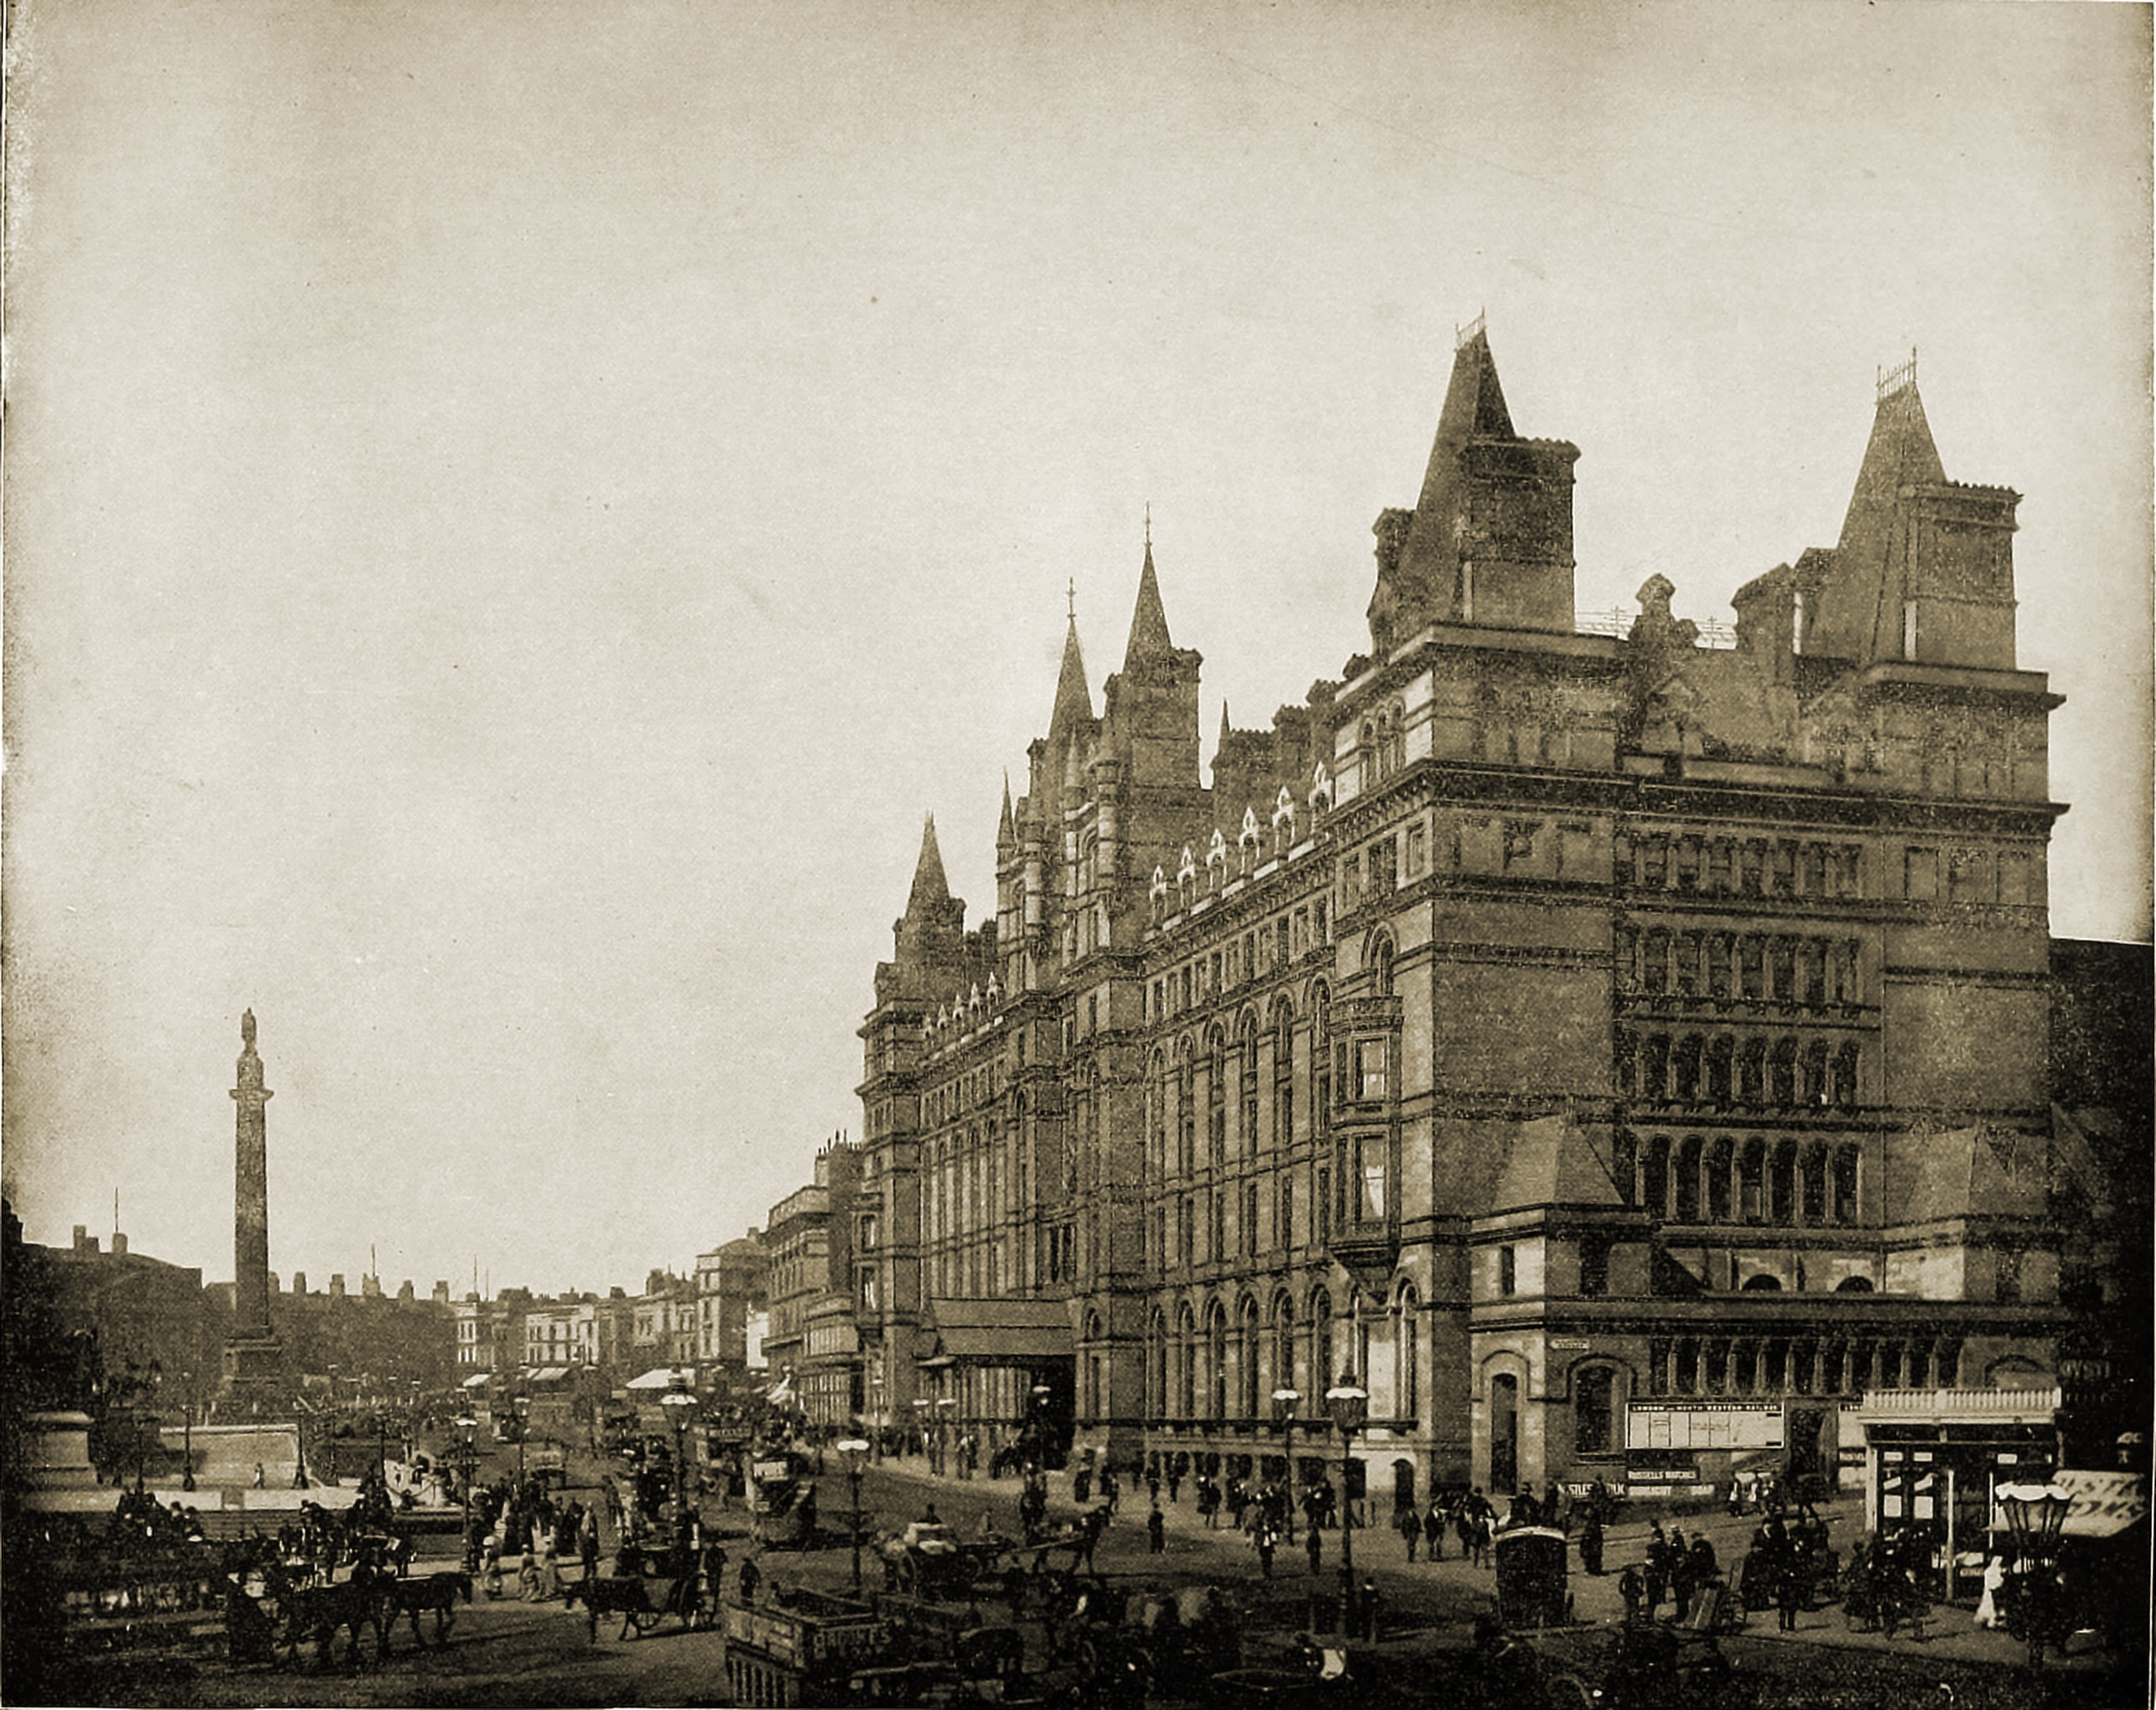 Liverpool Lime Street England about 1892